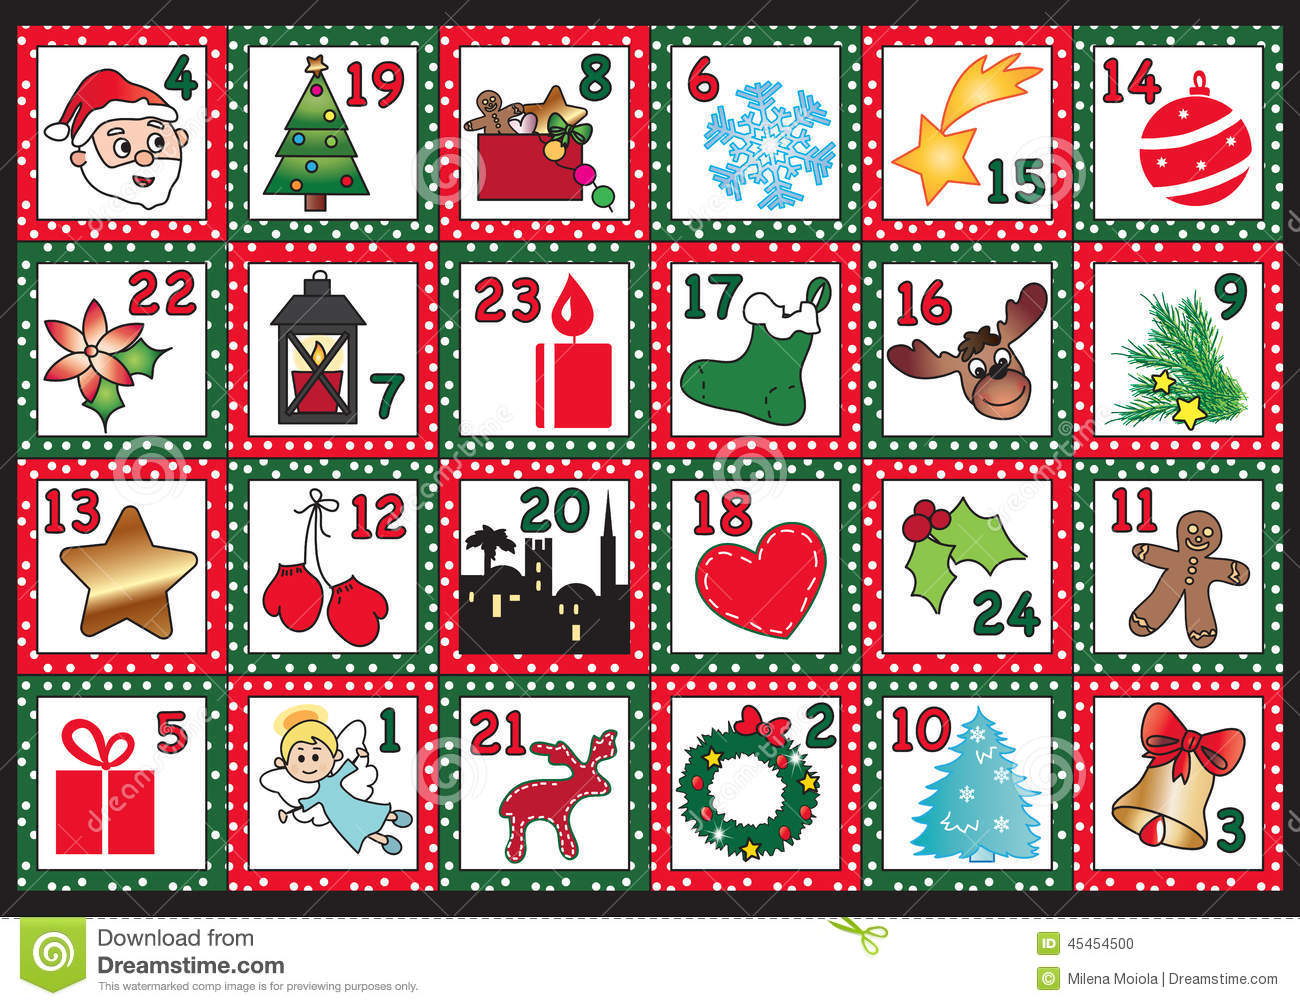 Calendar Numbers Clipart : Advent calendar stock illustration of comet